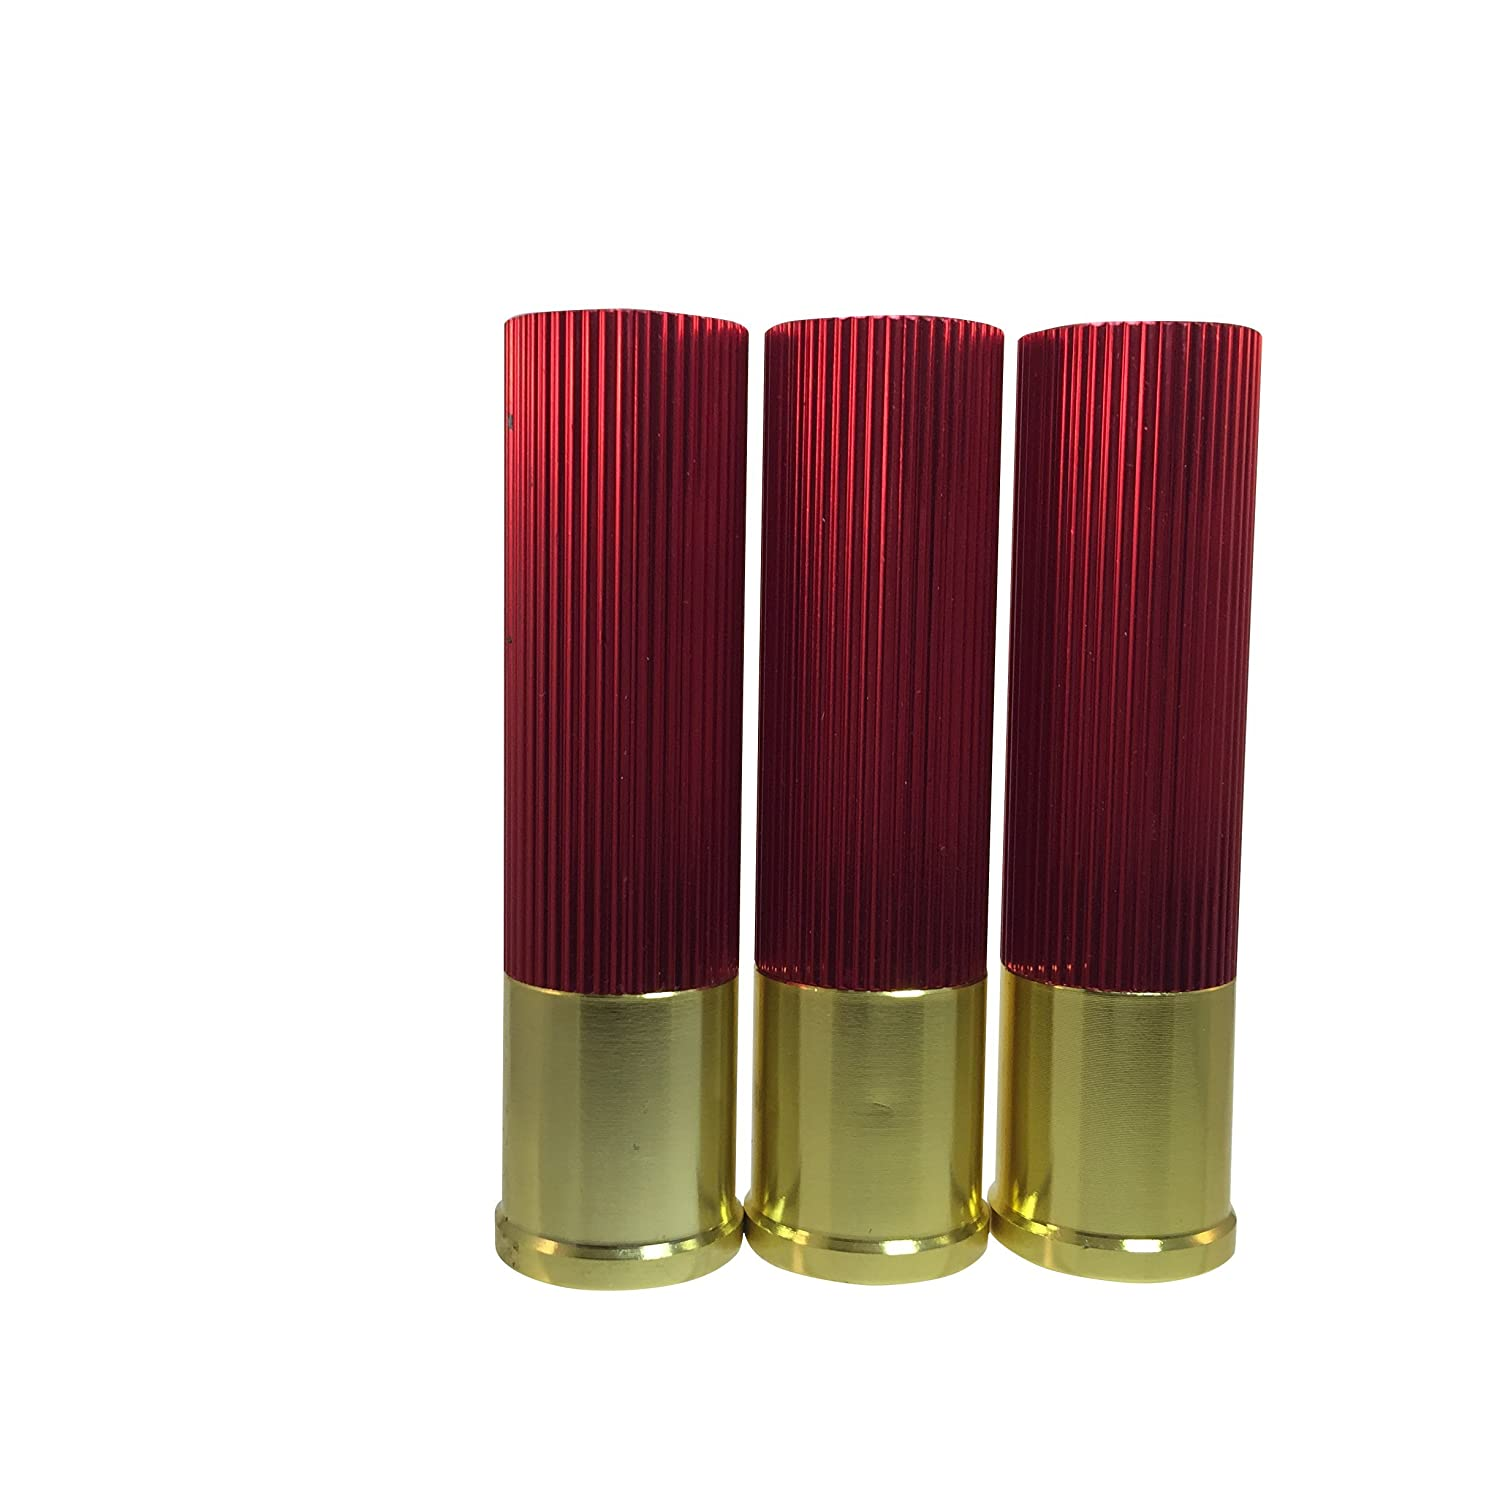 Aluminum LED 3 Pack with batteries Shotgun Shell Flashlights